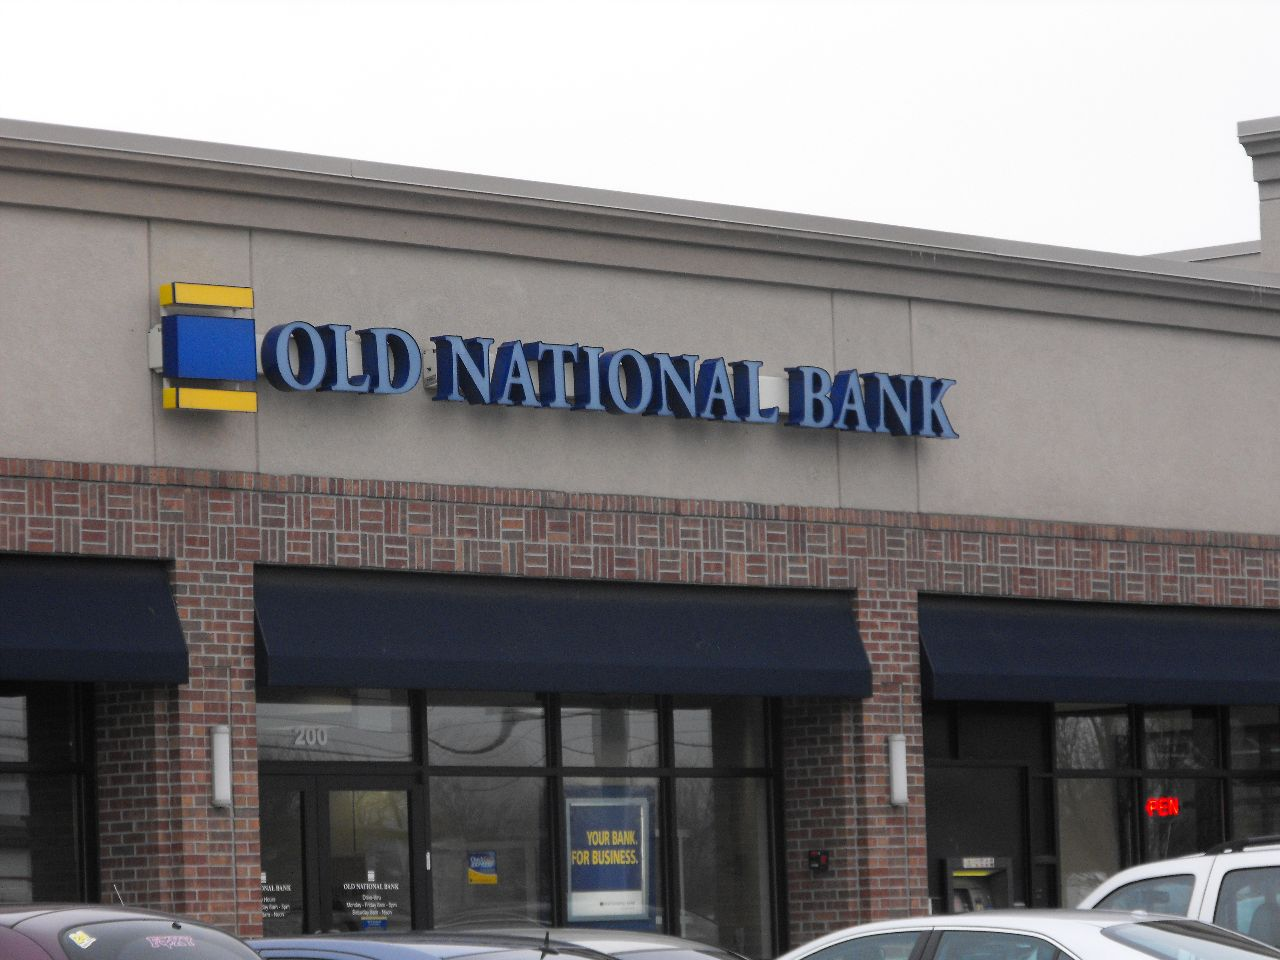 Old National Bank - CLOSED